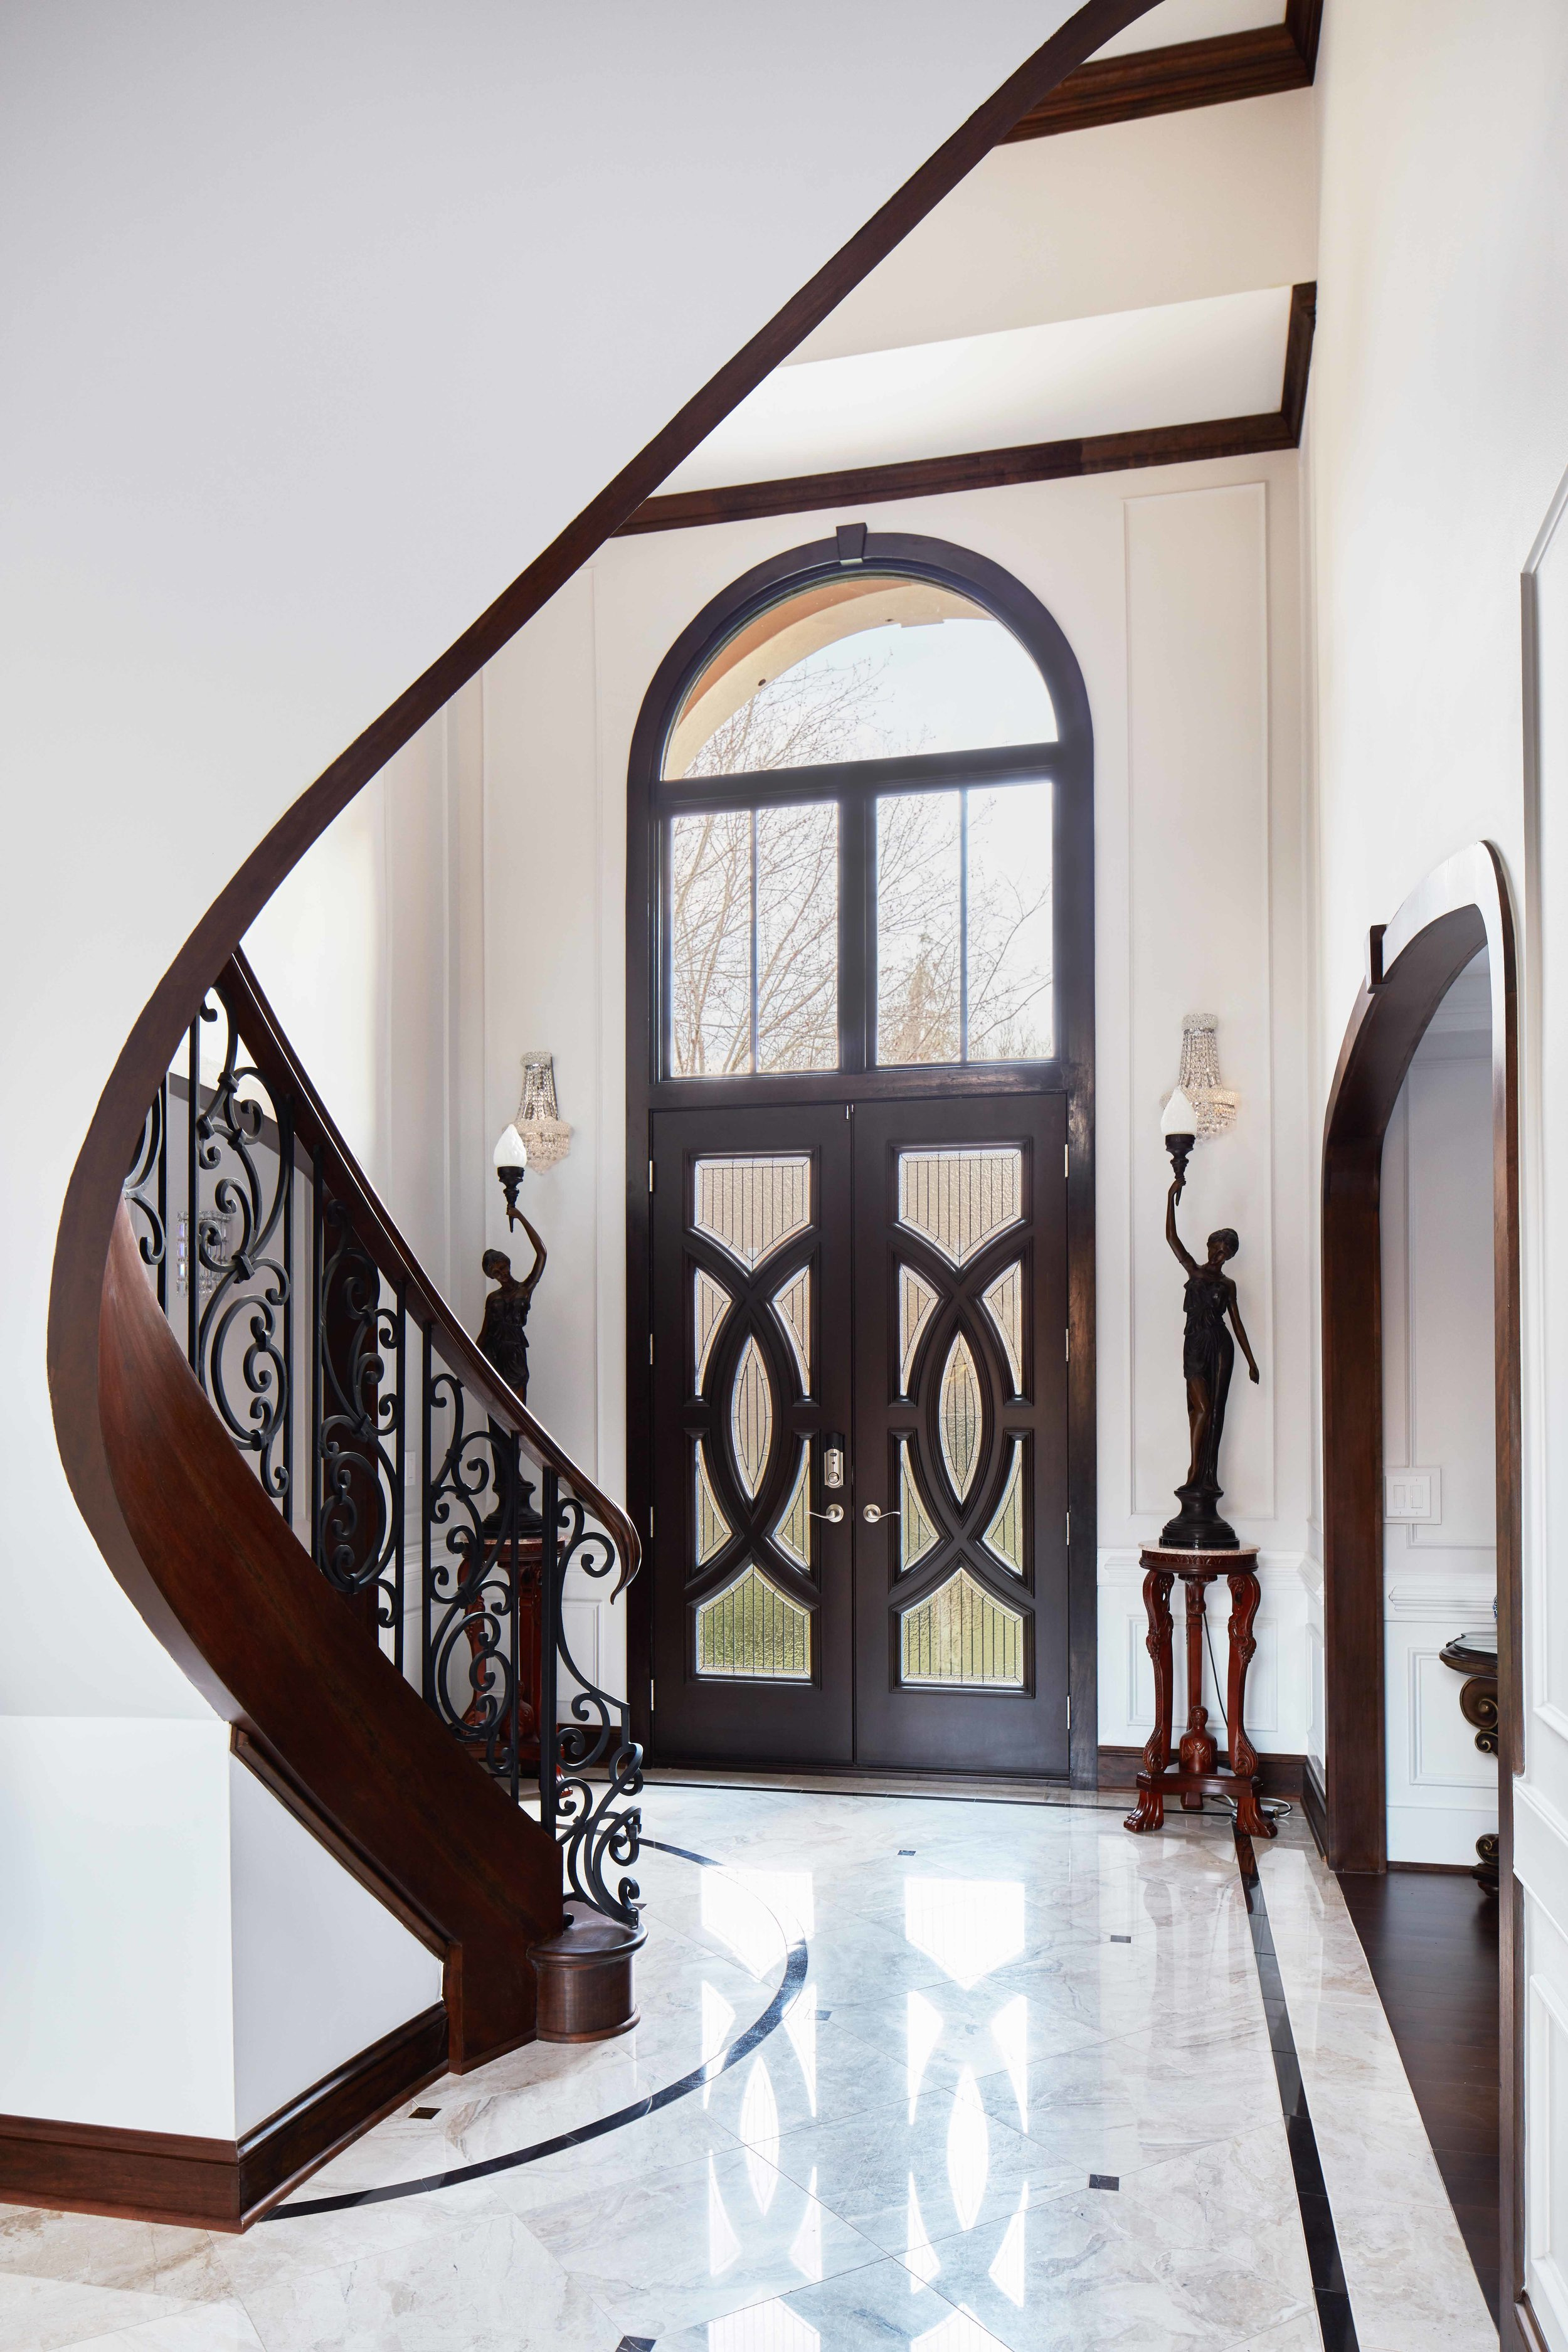 Finished Staircase: The curved staircase becomes a sculptural element that frames the front entry from the Great Room.